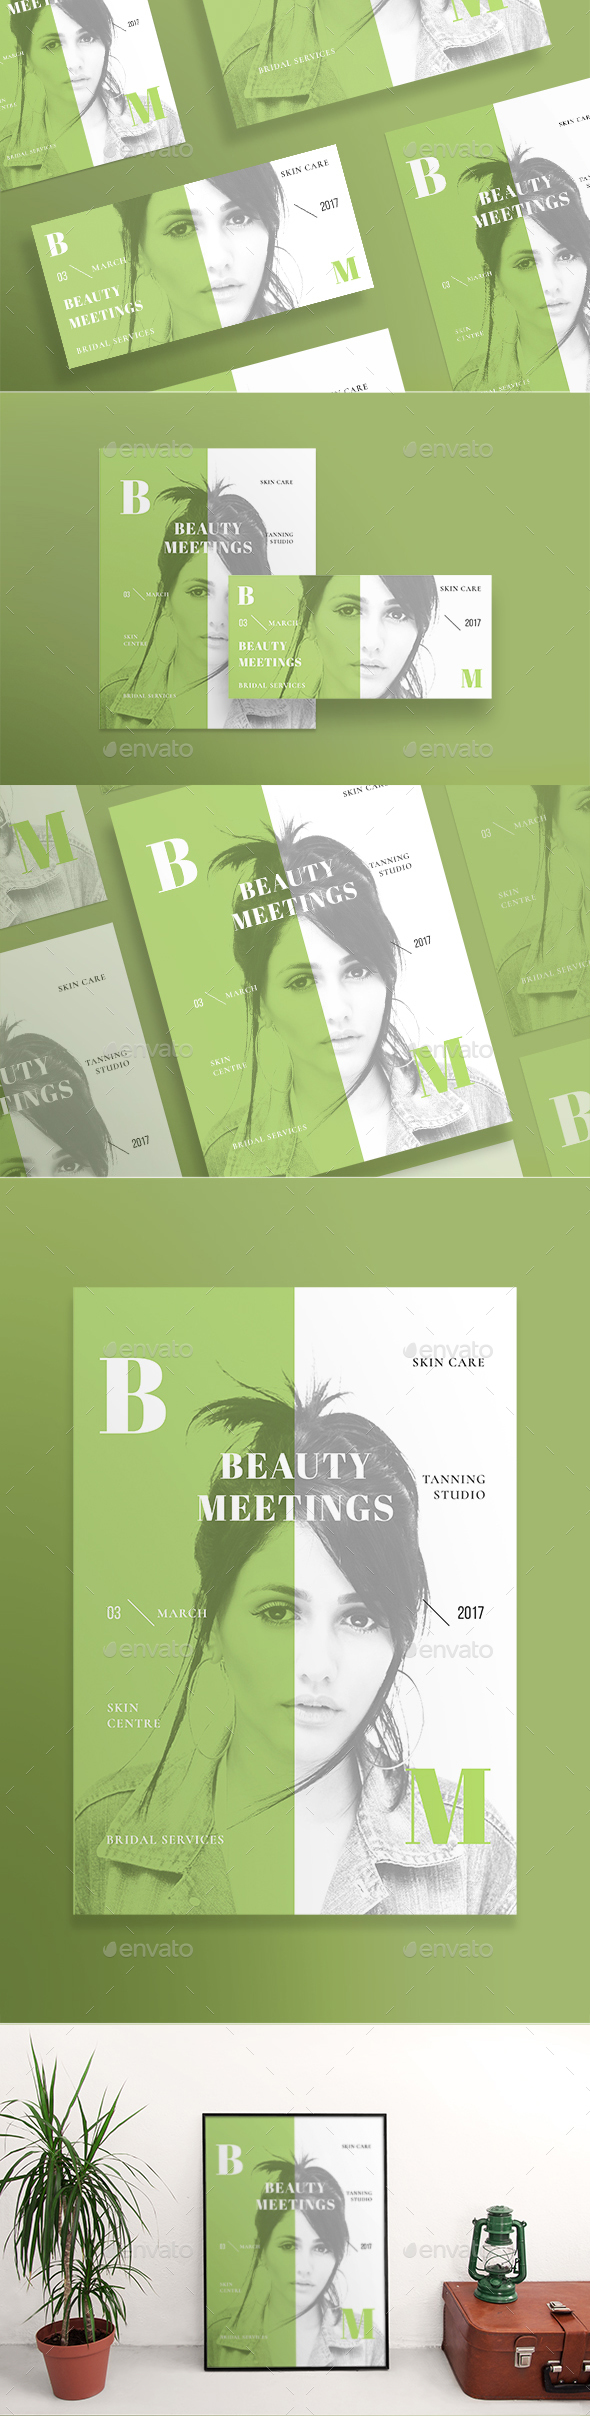 Beauty Meetings Flyers - Miscellaneous Events